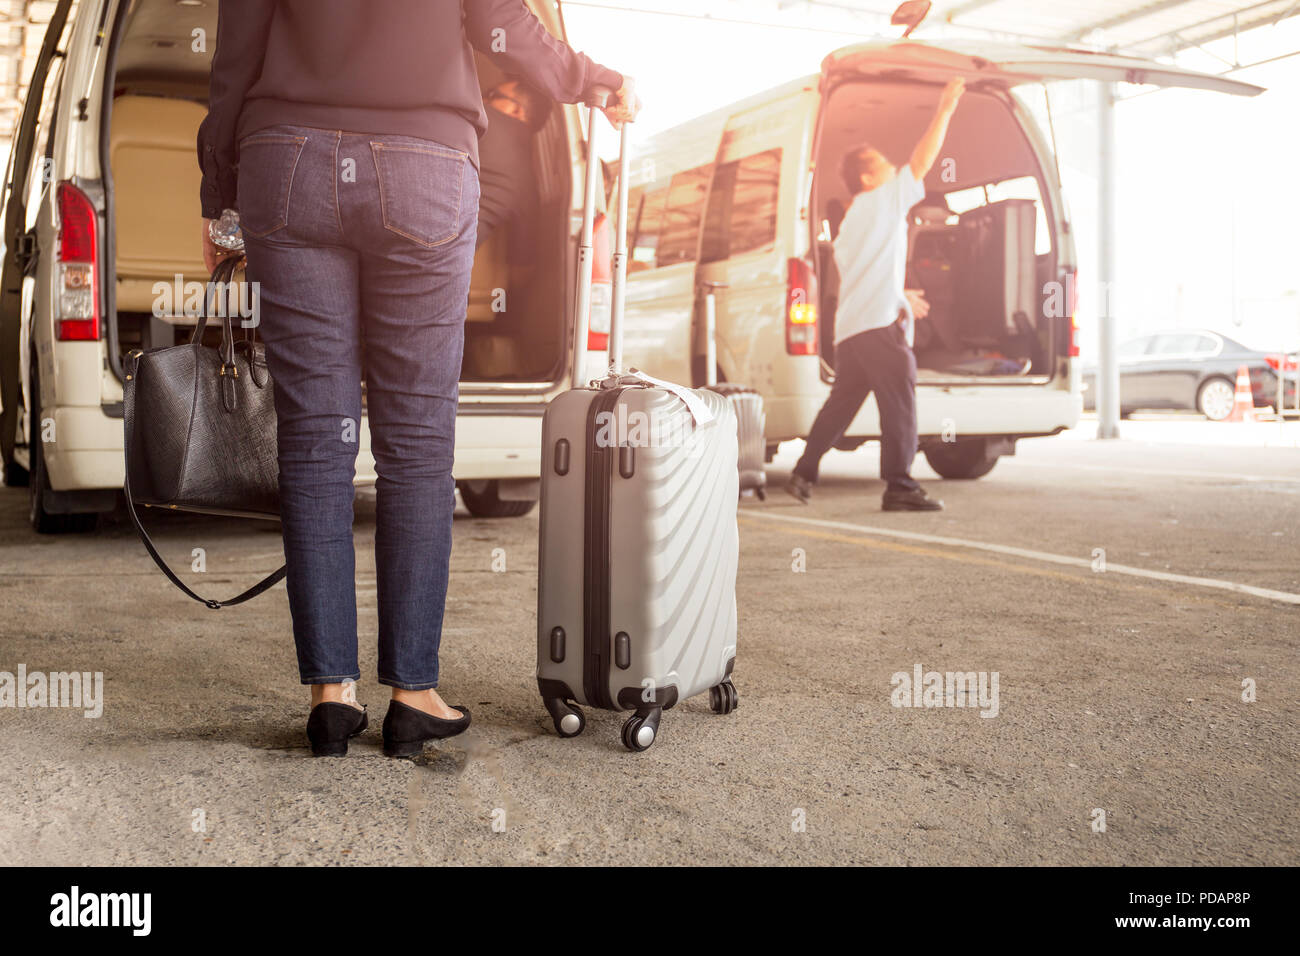 Woman tourist standing with luggage with pick up van at airport. - Stock Image